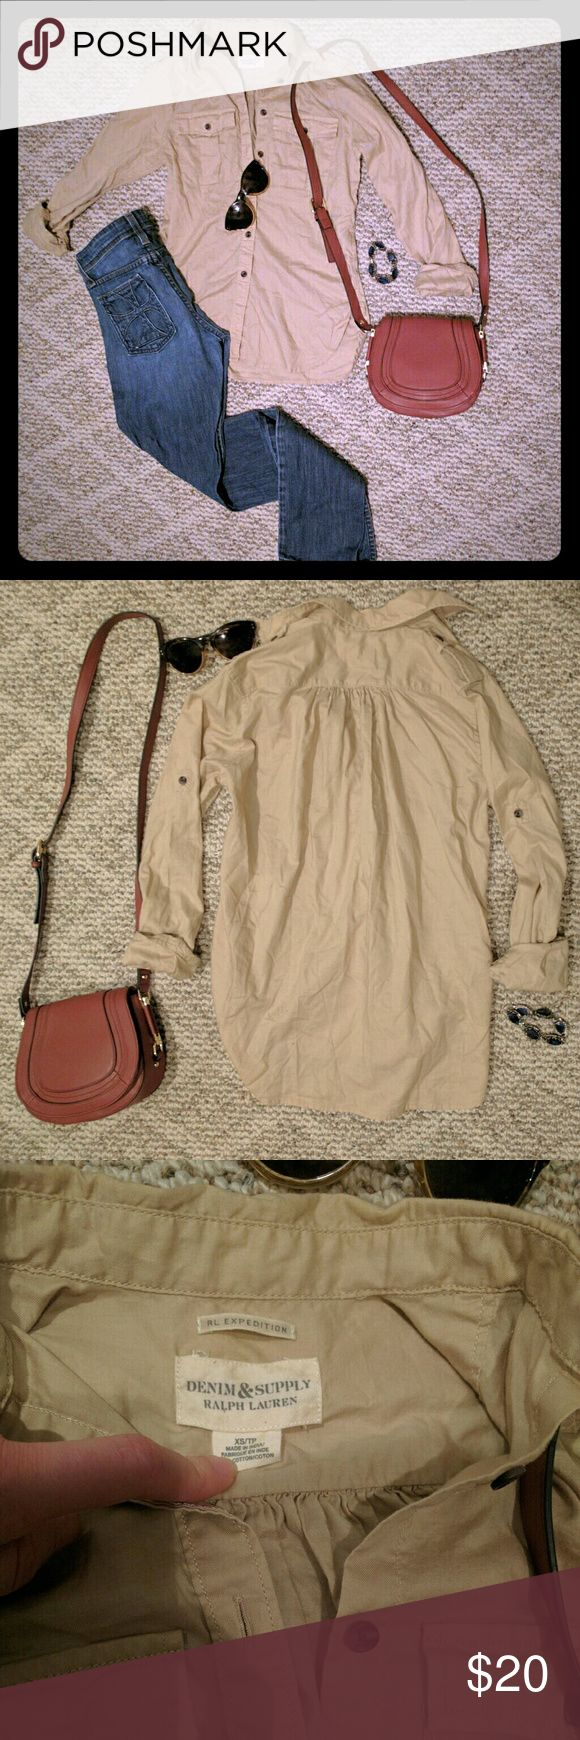 Cargo shirt Tan / khaki button up expedition top by Ralph Lauren Denim & Supply in beautiful condition.  Size extra small, loose fit. Very lightweight & perfect for spring/summer! Roomy front pockets.   All my items are from a smoke free home.   Make me a bundle offer! Denim & Supply Ralph Lauren Tops Button Down Shirts